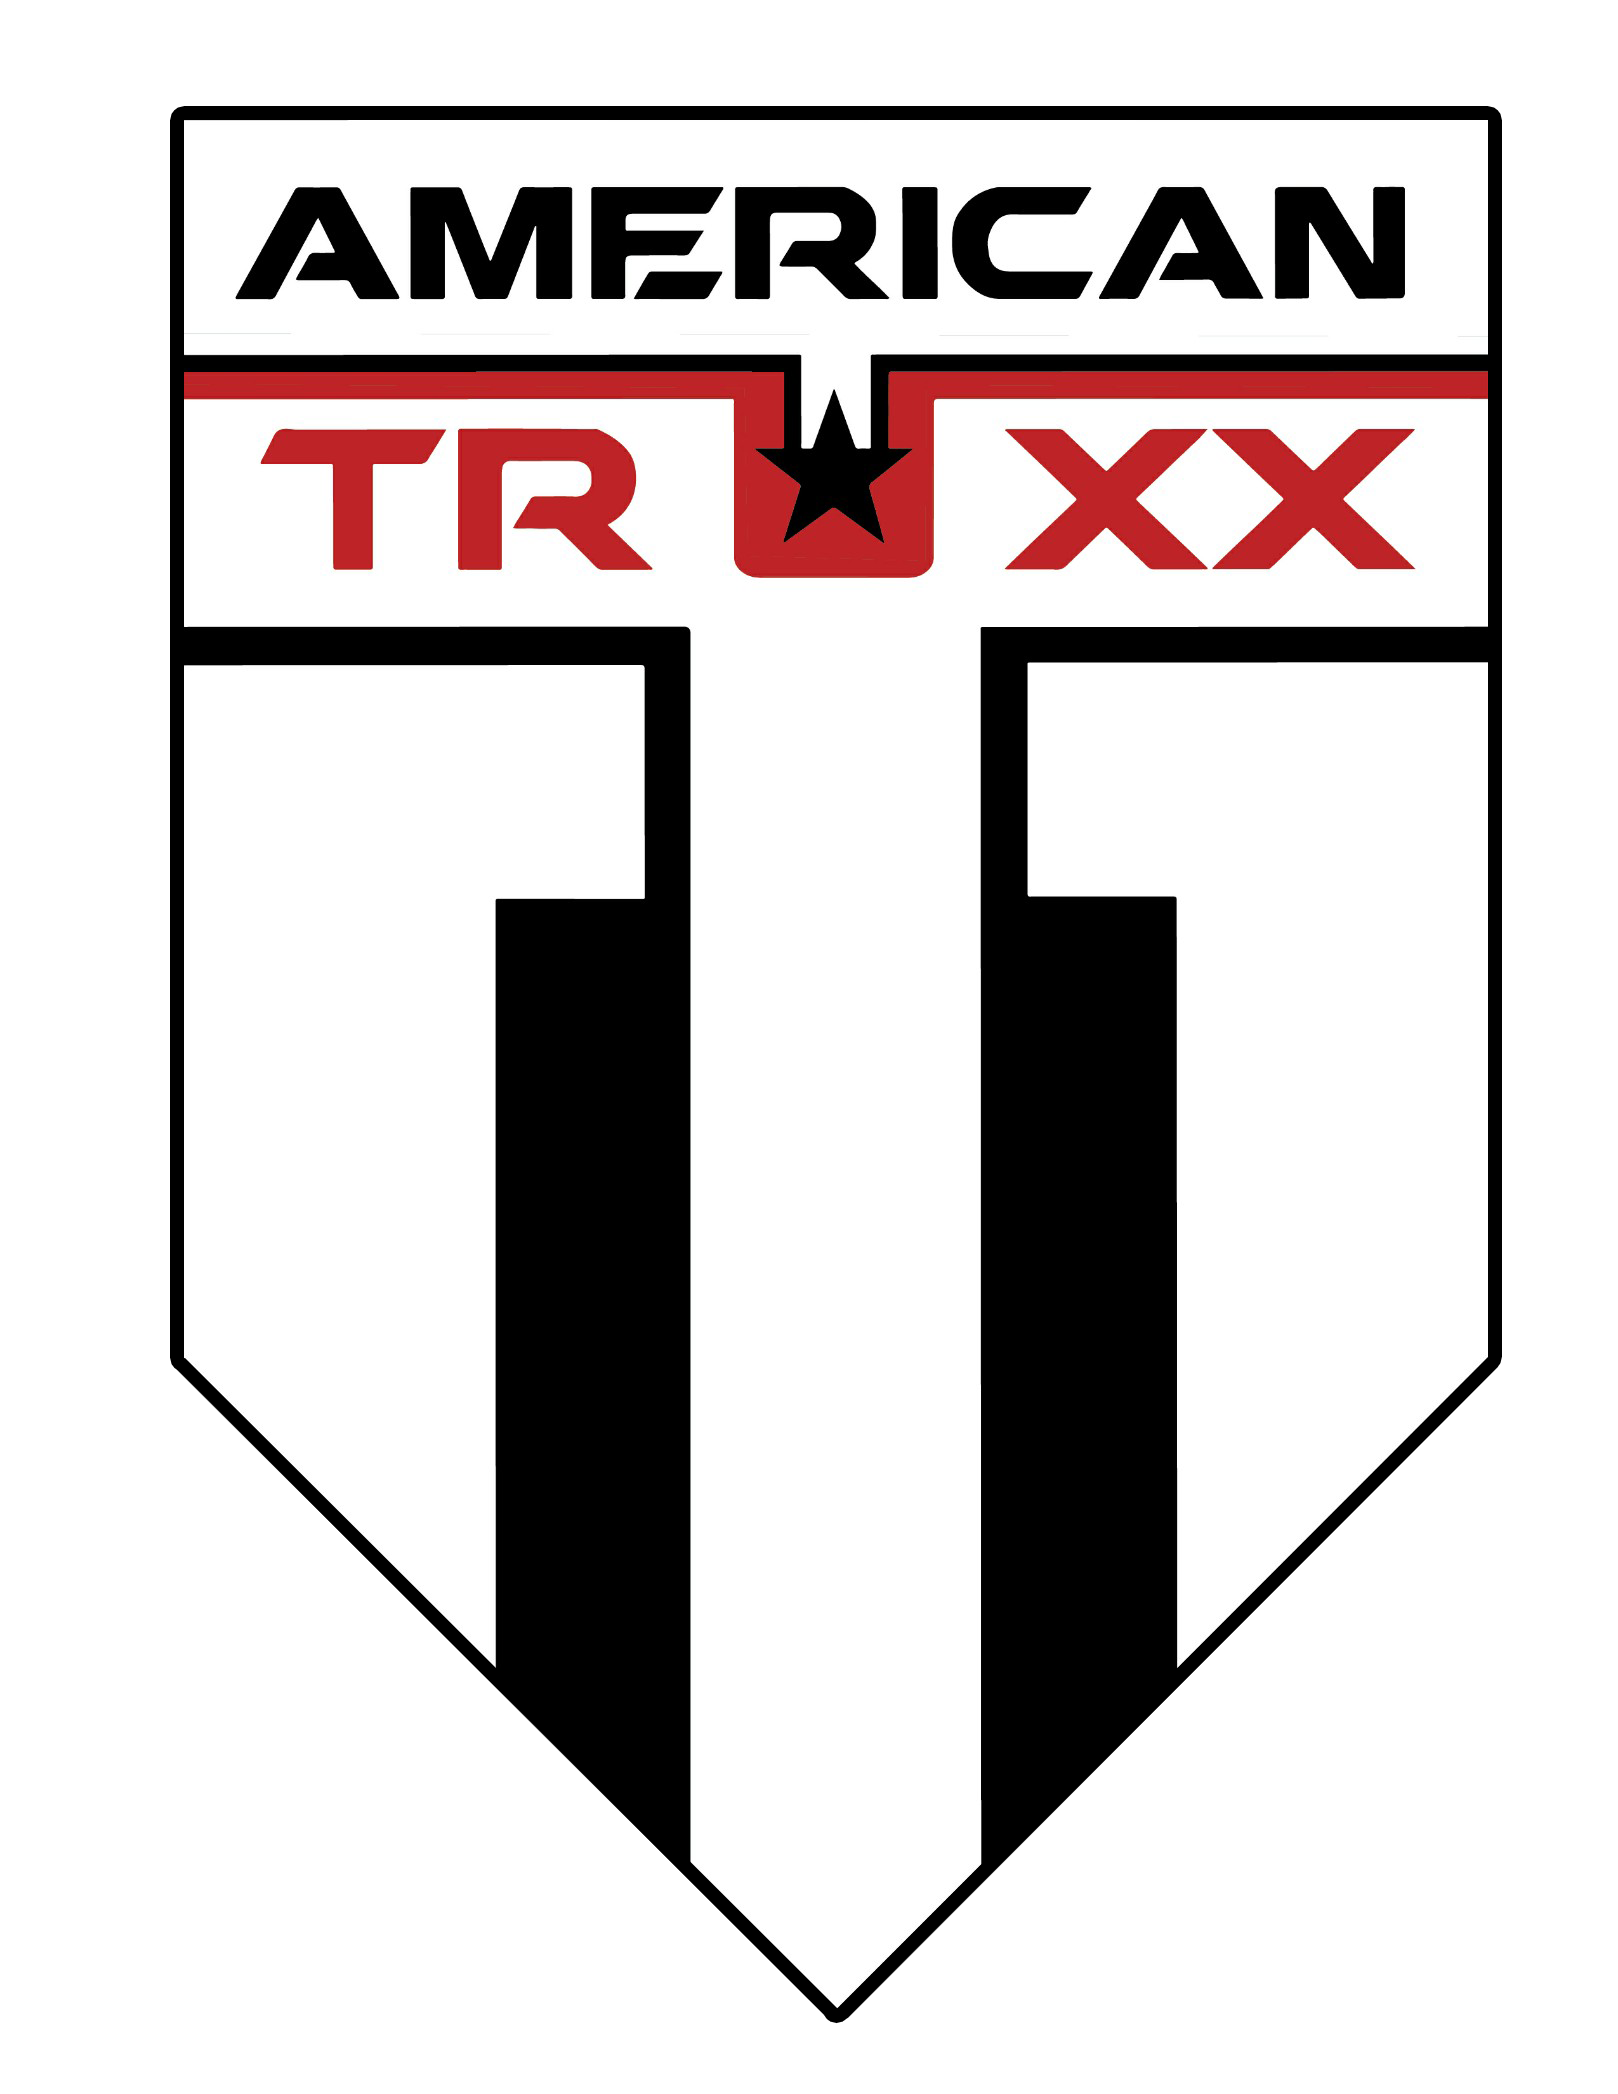 American Truxx Striker wheel